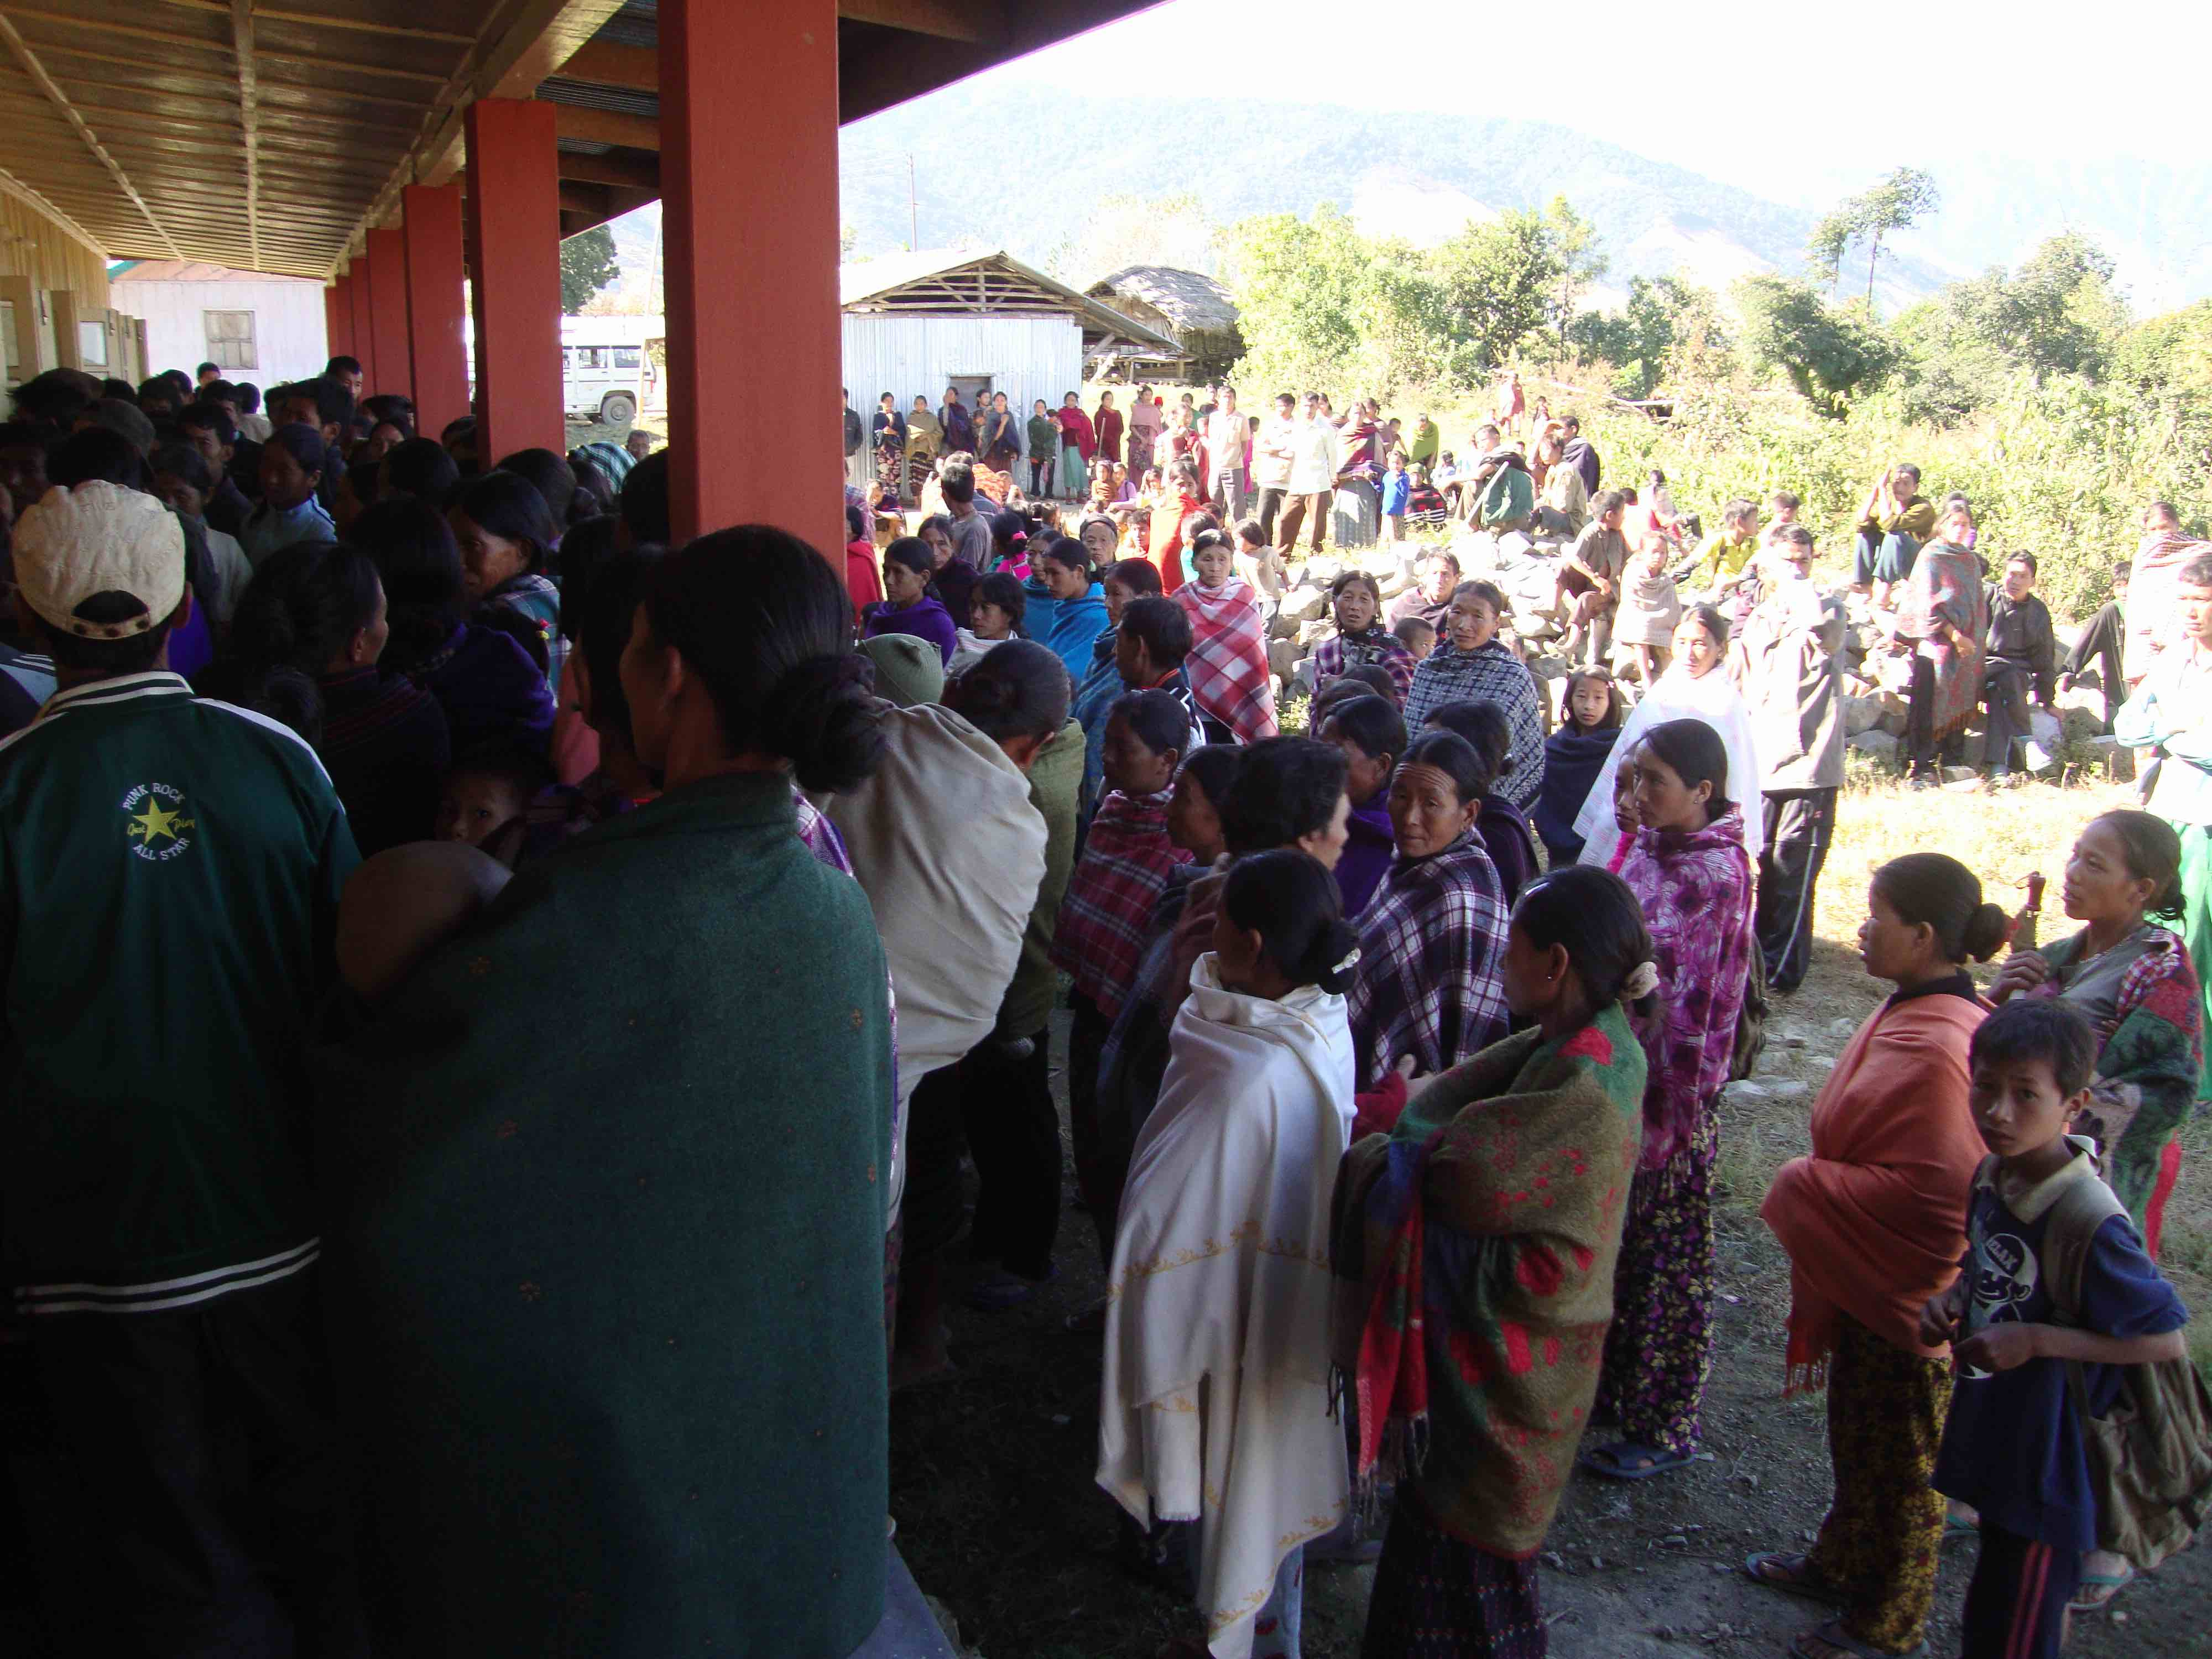 Residents of Tuensang, Mon and Longleng attend a free annual surgical camp organised by the NGO Eleutheros Christian Society in the Public Health Centre in Longpong, which functions in a public-private partnership between the NGO and National Health Mission. Eight such camps have been organised so far and 554 surgeries conducted. Courtesy: Eleutheros Christian Society